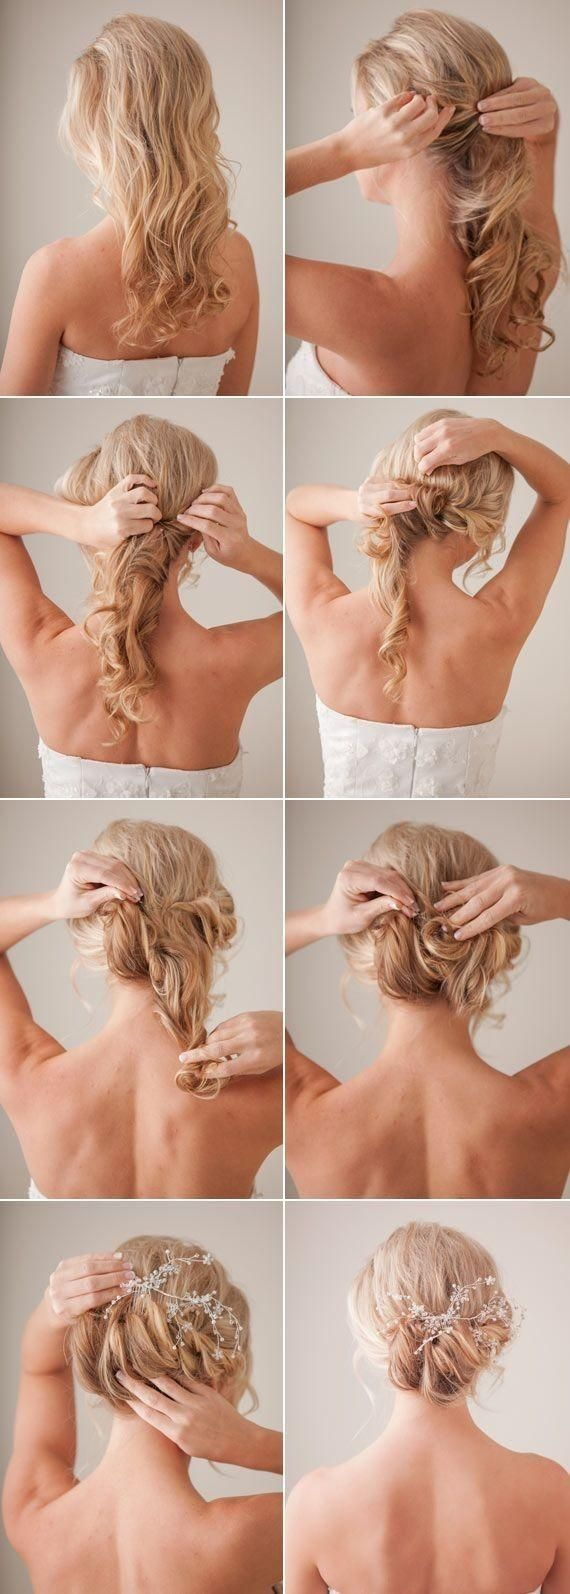 643 best updo hairstyles images on pinterest hairstyles updo 643 best updo hairstyles images on pinterest hairstyles updo hairstyle and braids pmusecretfo Image collections